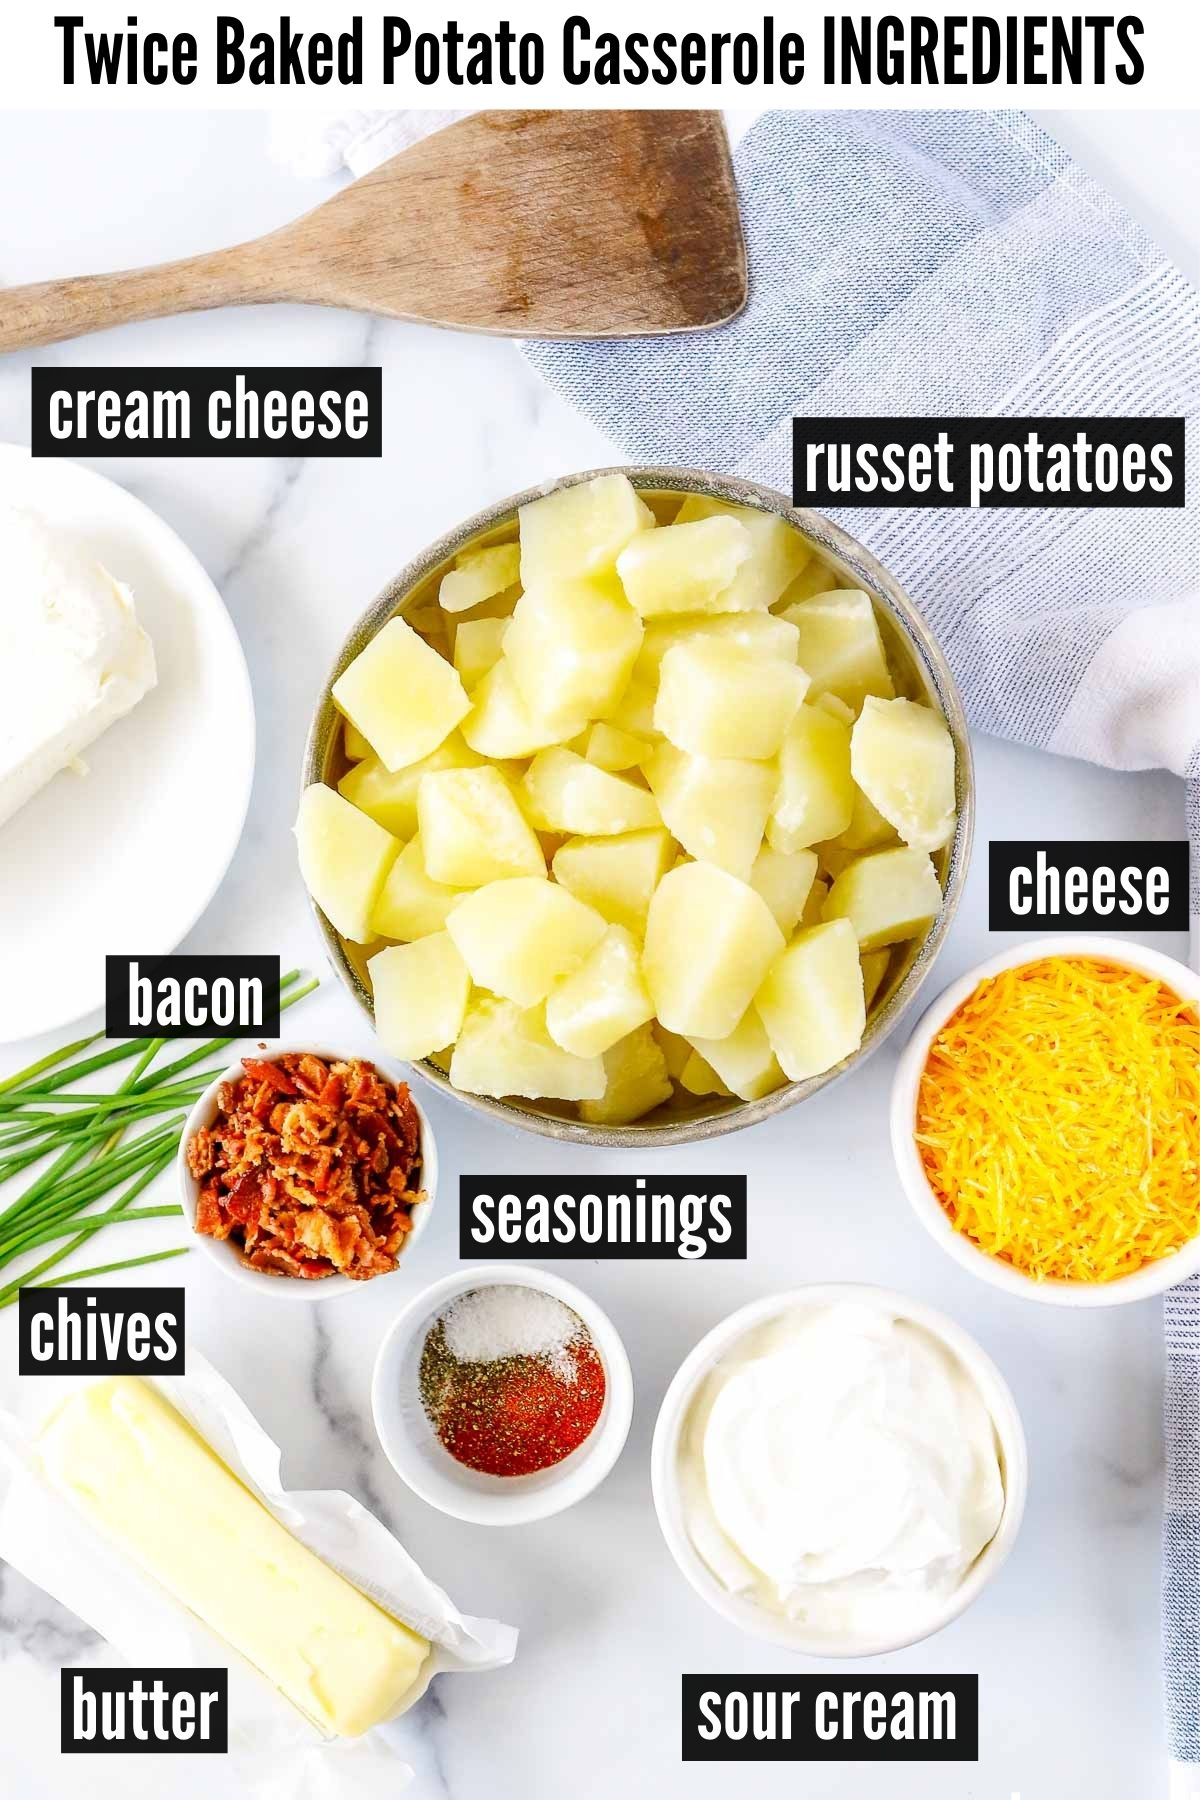 twice baked potato casserole ingredients